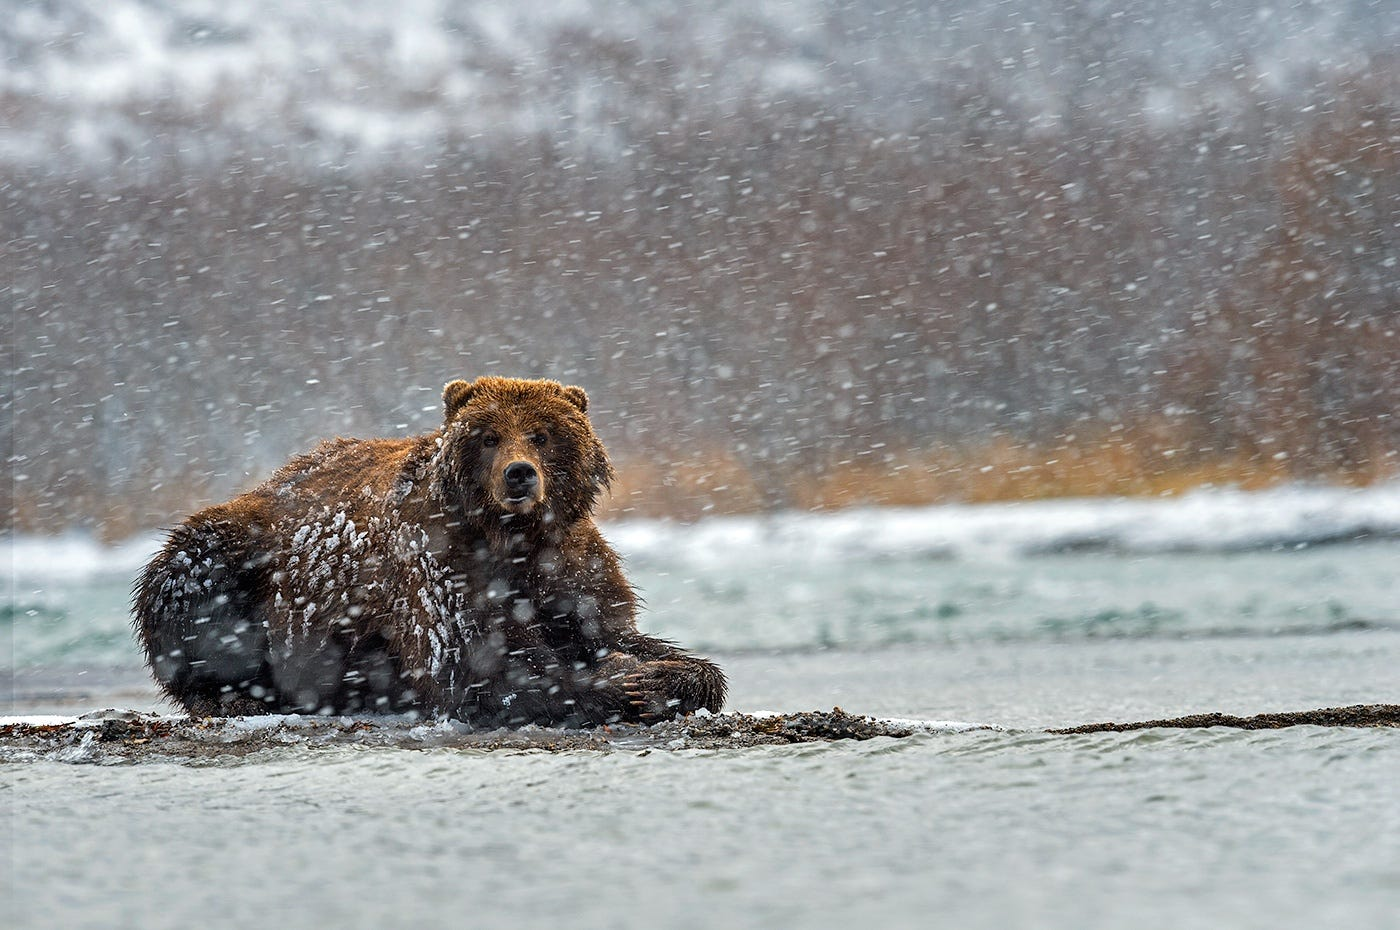 Ungentle charm of Kamchatka bears in photos by Sergey Ivanov - 24